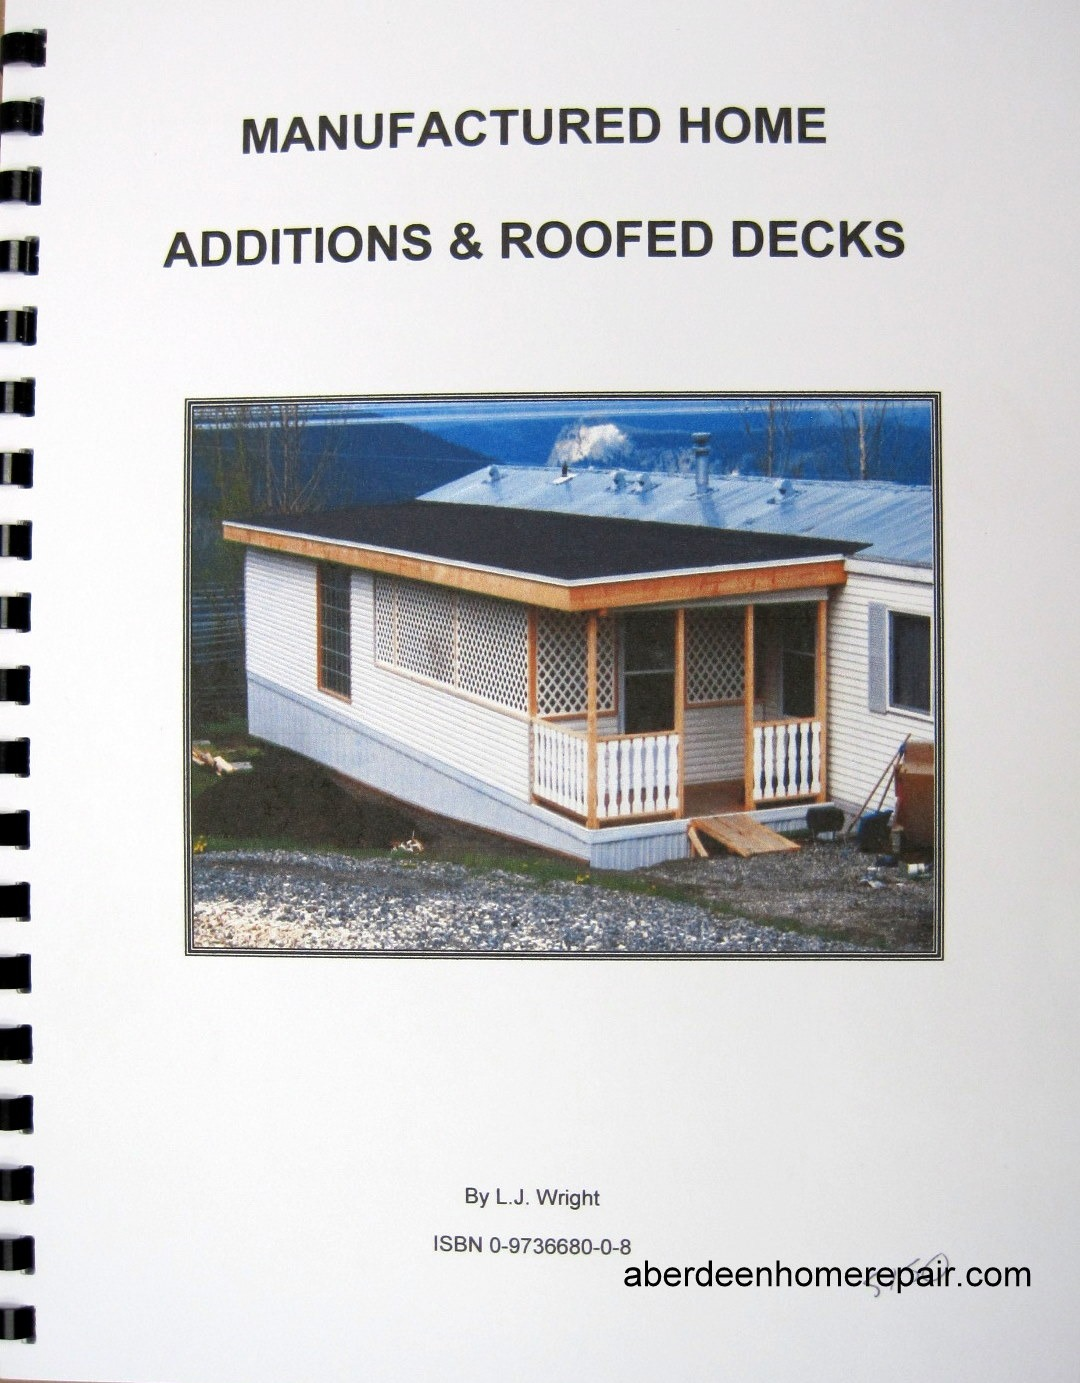 addition book